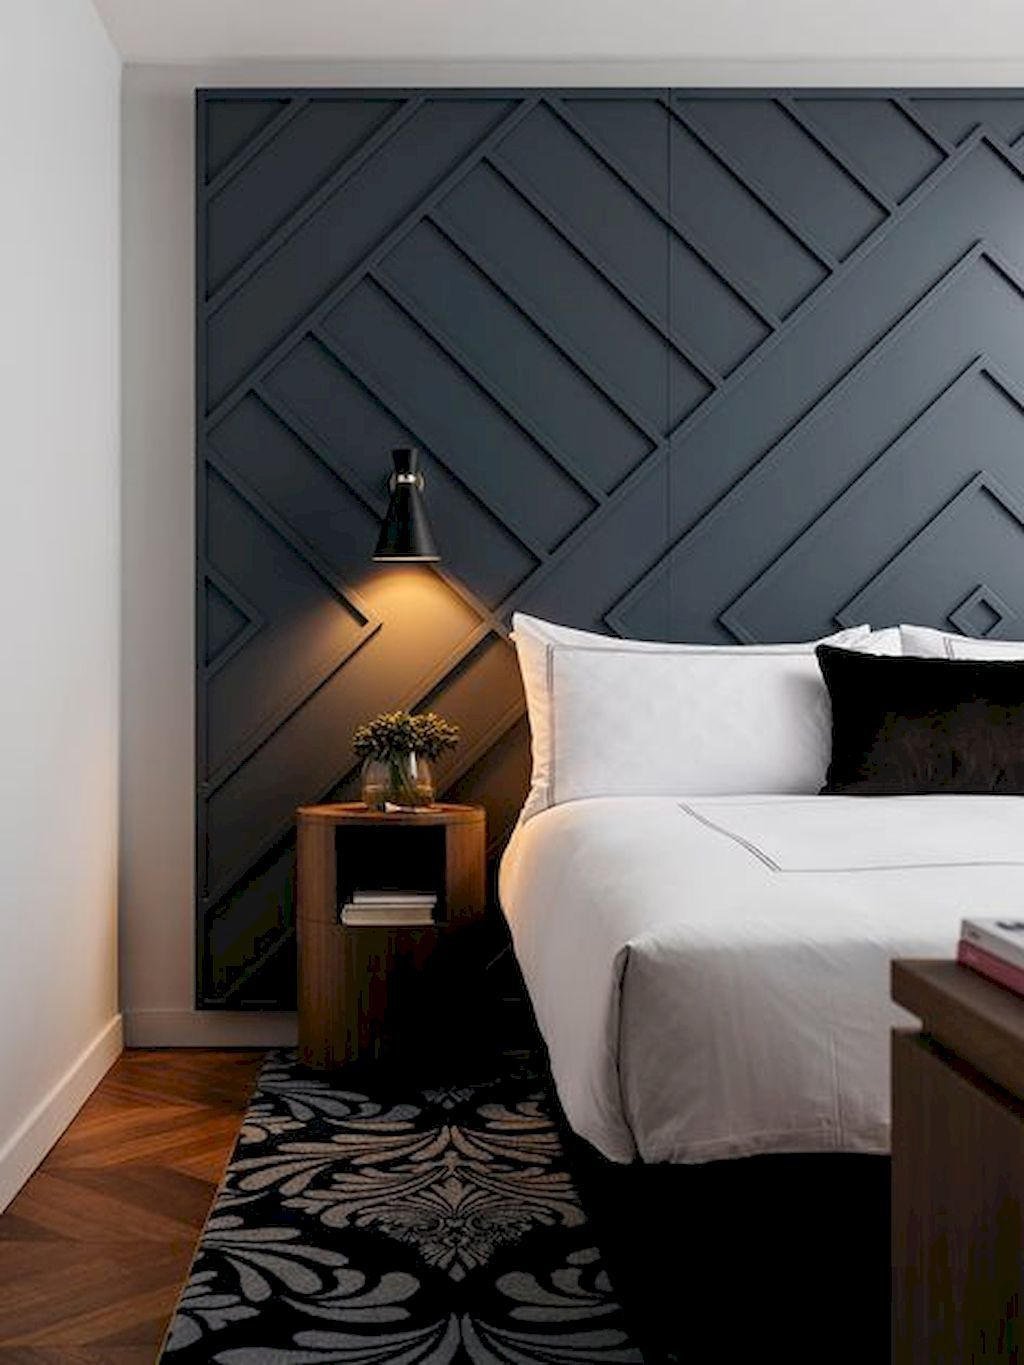 Perfect 121 Simple Cool Creative Wall Decorating Ideas That Are Easy To Apply In Your Home Https Homemi Bedroom Interior Home Decor Bedroom Modern Bedroom